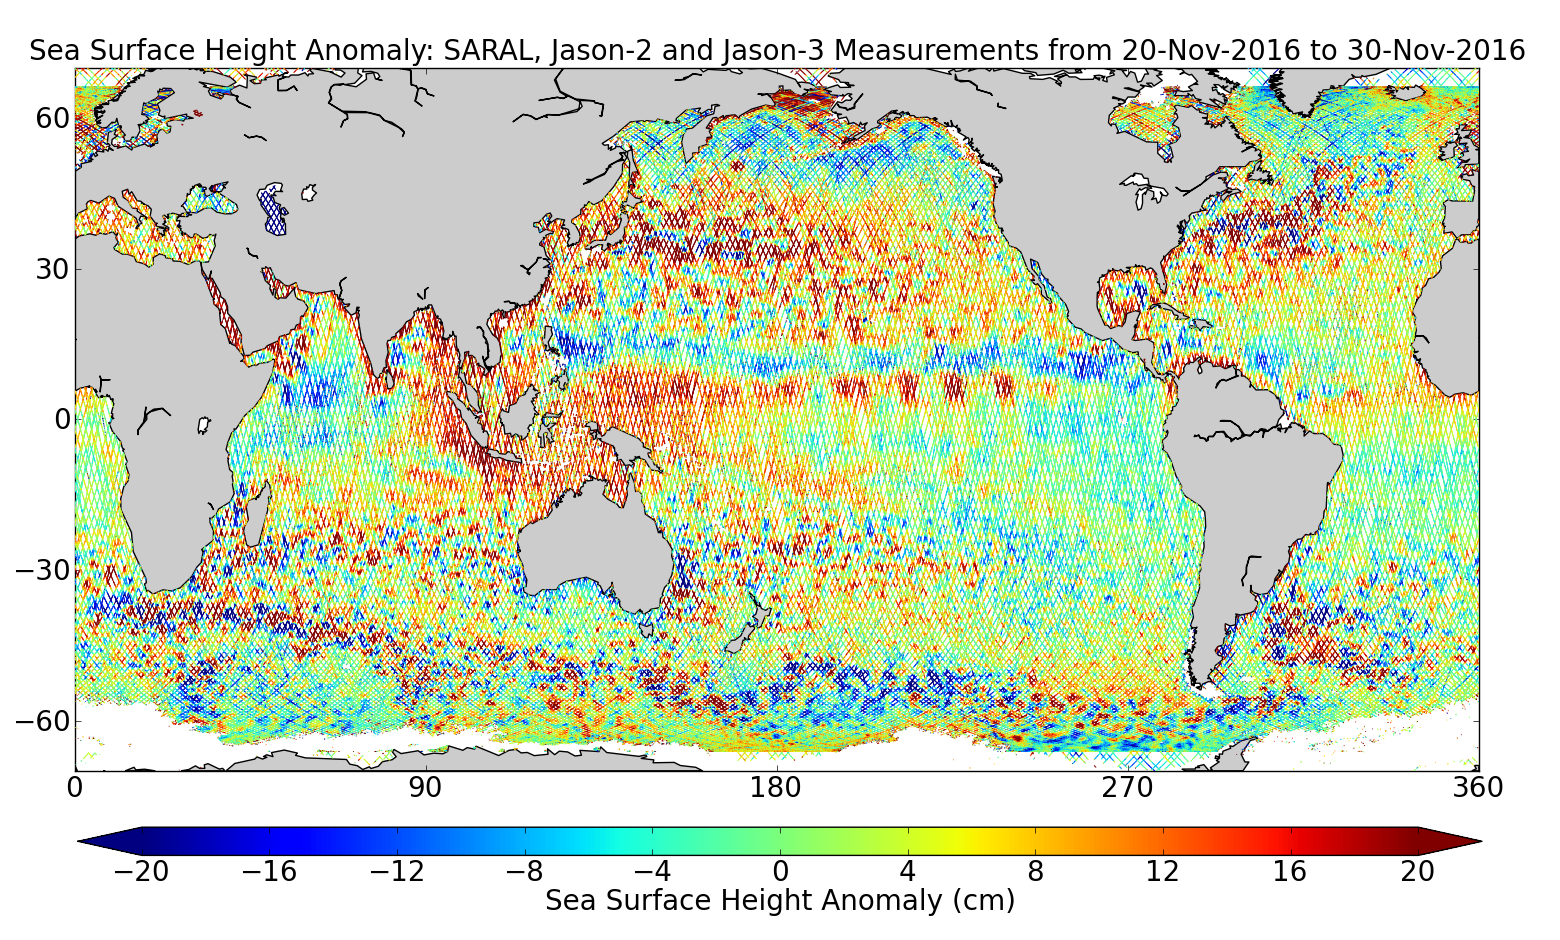 Sea Surface Height Anomaly: SARAL, Jason-2 and Jason-3 Measurements from 20-Nov-2016 to 30-Nov-2016